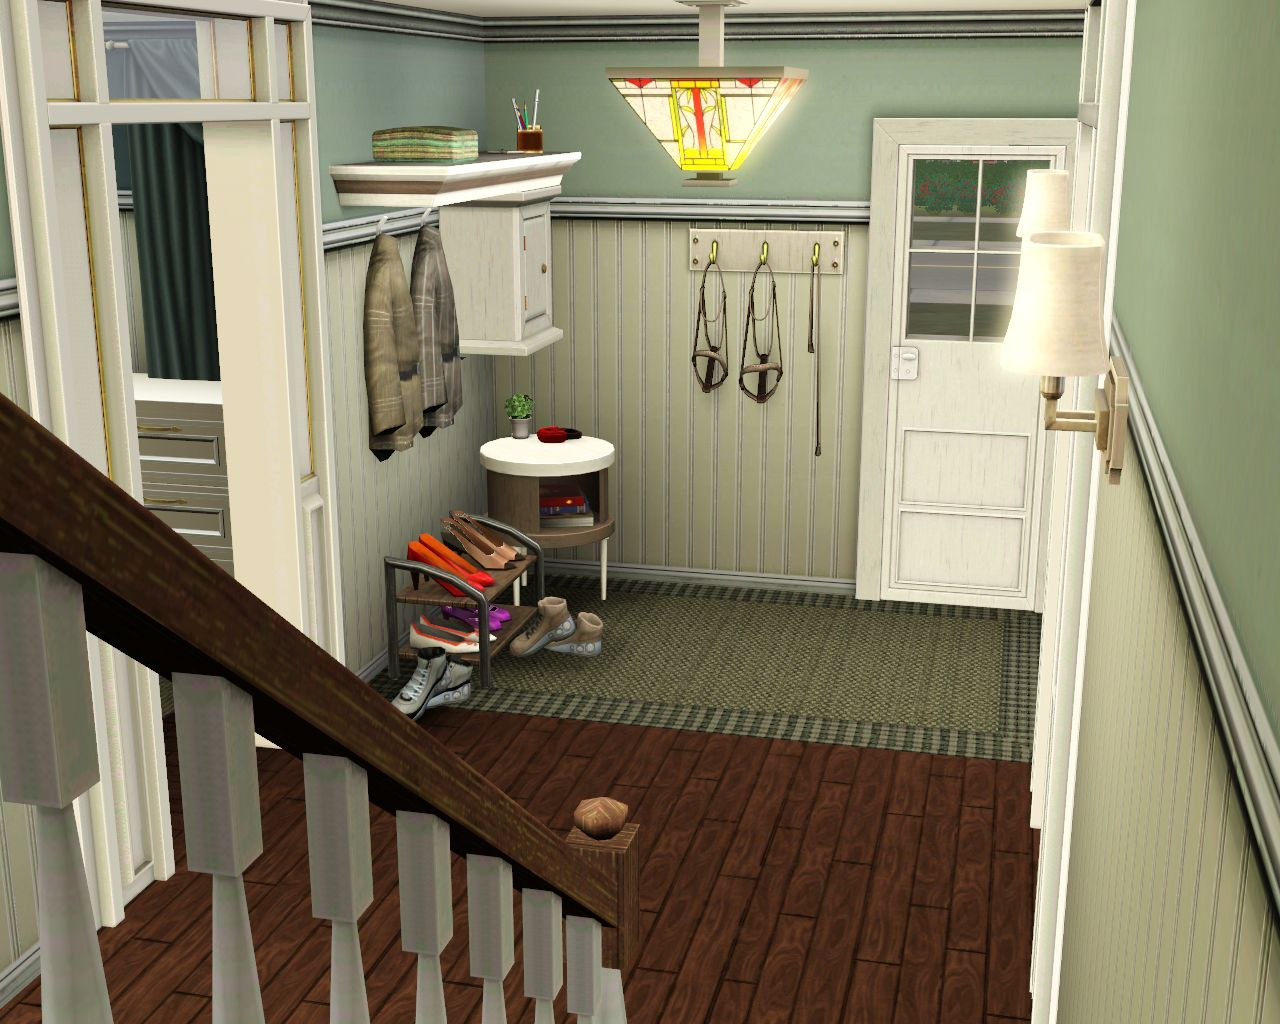 mod the sims wcif pair of decorative shoes may be store On sims 3 foyer ideas